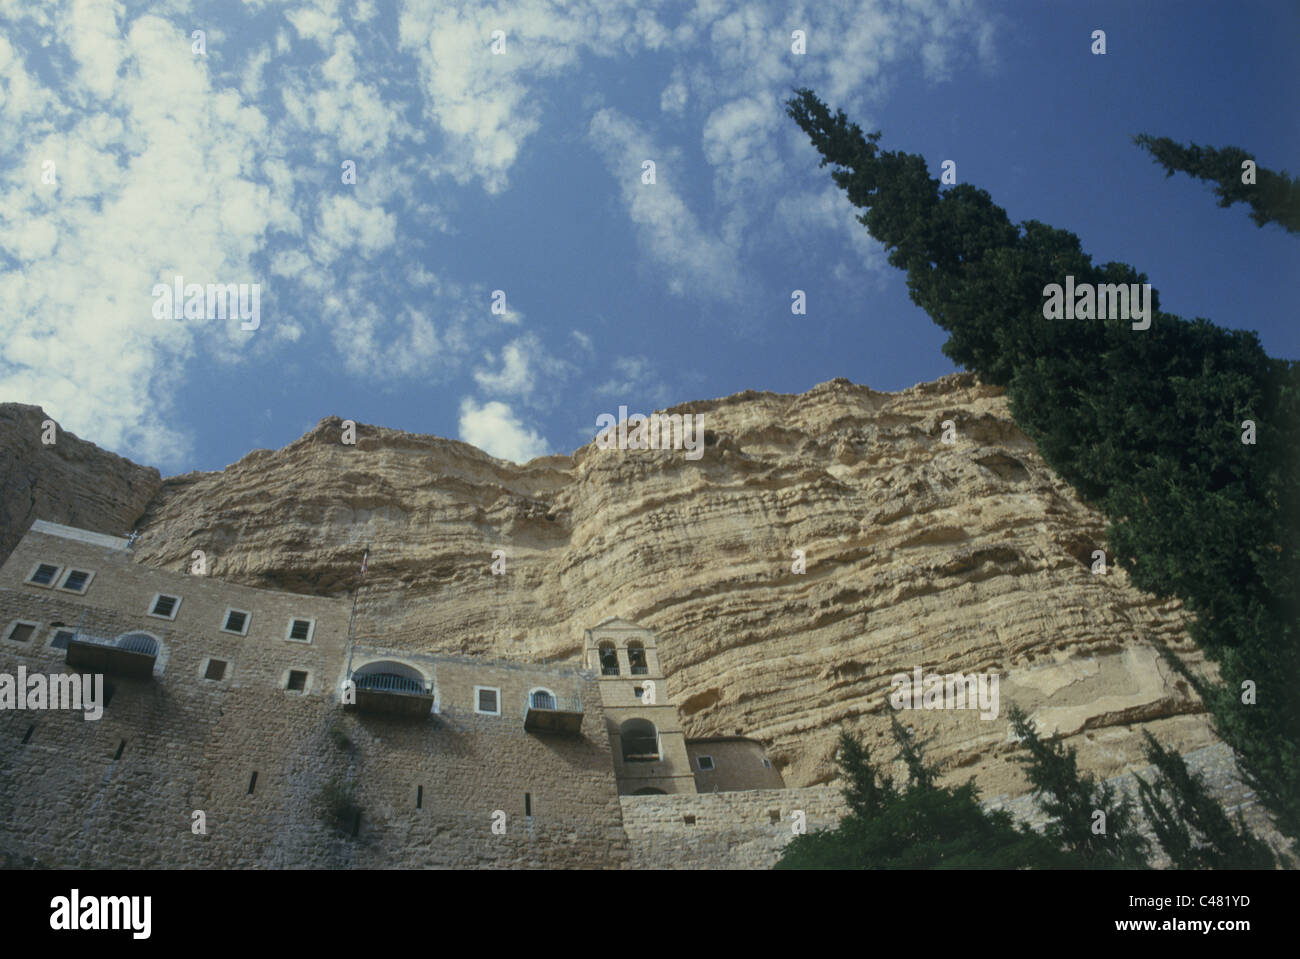 View of the monastery of ST. George in Wadi Kelt - Stock Image